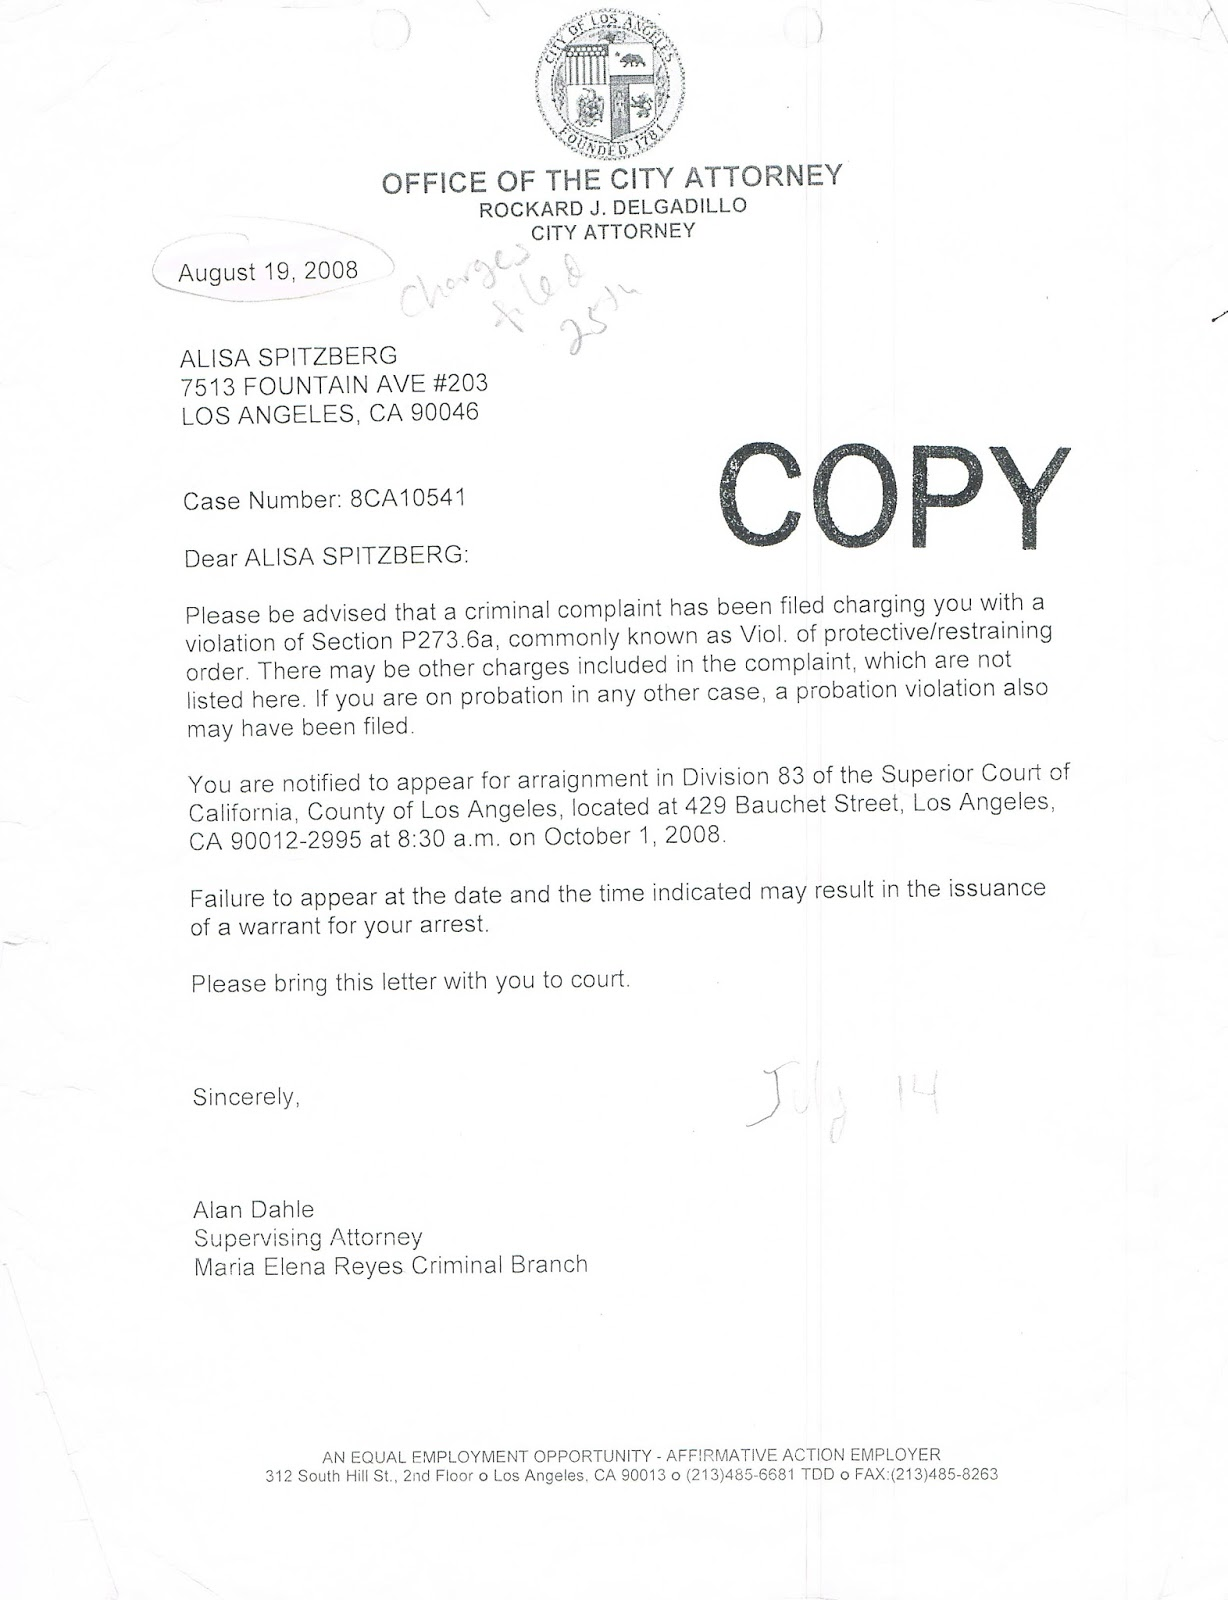 As You Can See A Charge Is Filed But Letter Sent Predates The Filing